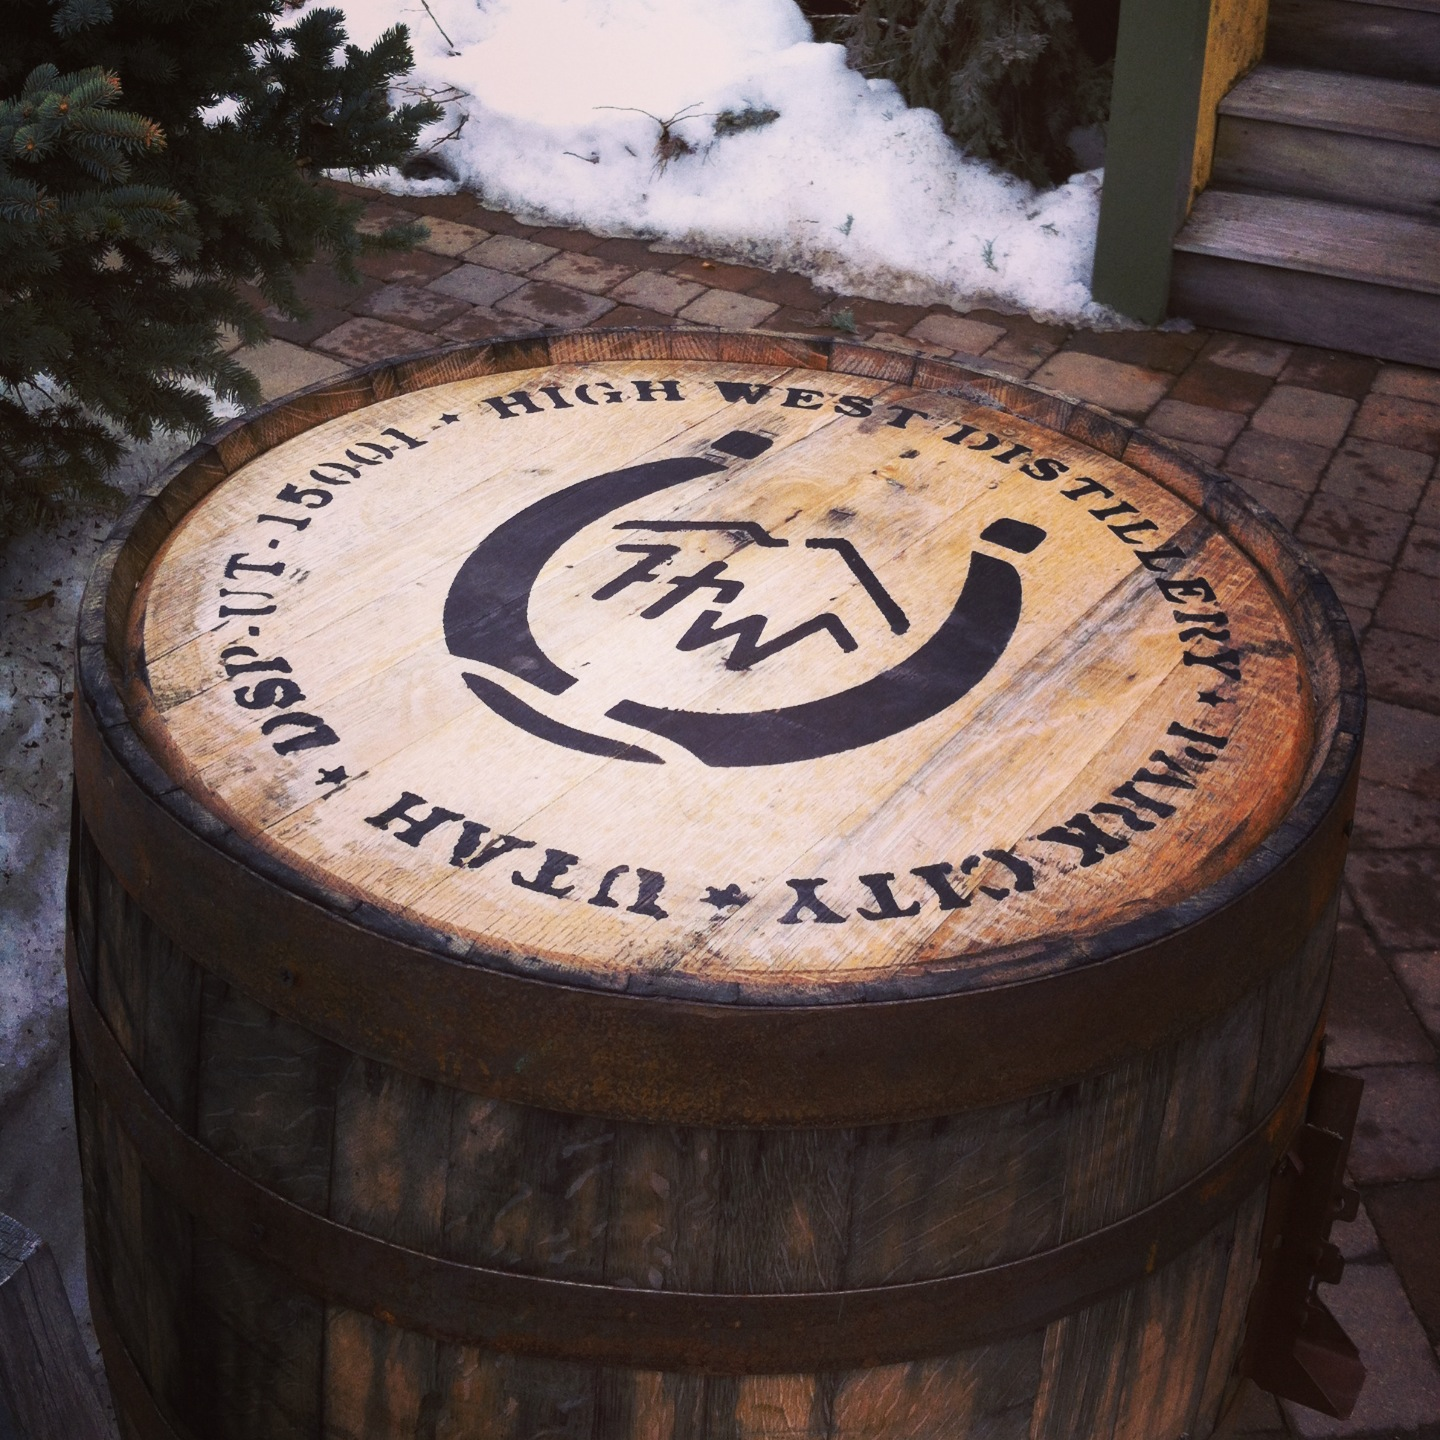 High West Distillery Barrel.JPG